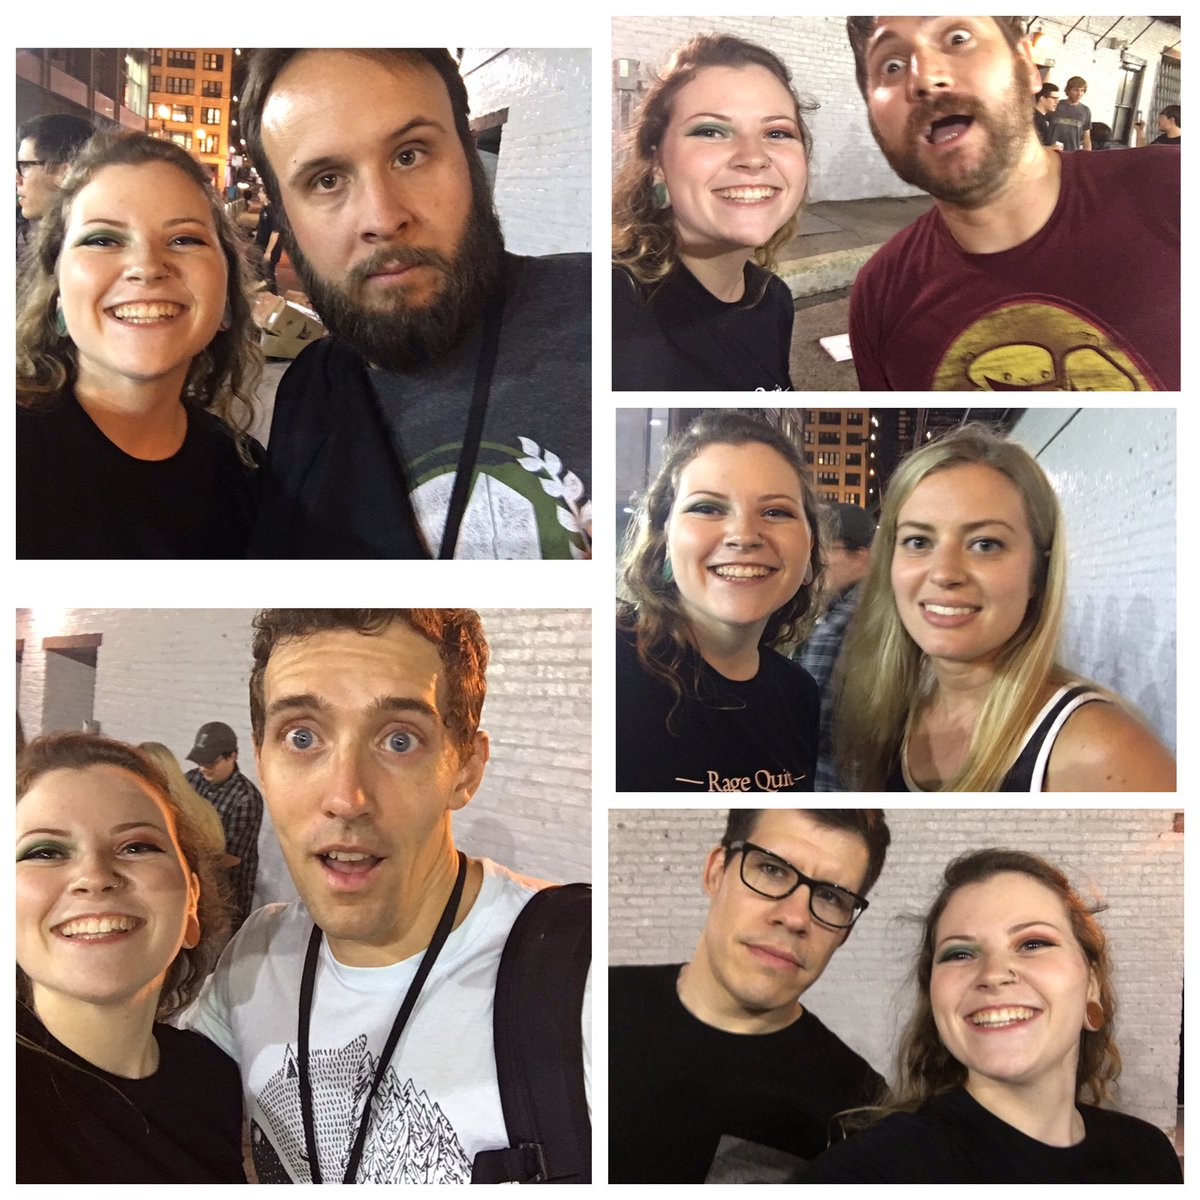 Megan Lynn Rose On Twitter And I M So Glad These People Are A Part Of Rooster Teeth So Glad To Meet Them And Thankful They Didn T Run Away How does a guy who professionally makes fun of video games for a living end up in the squared circle? twitter